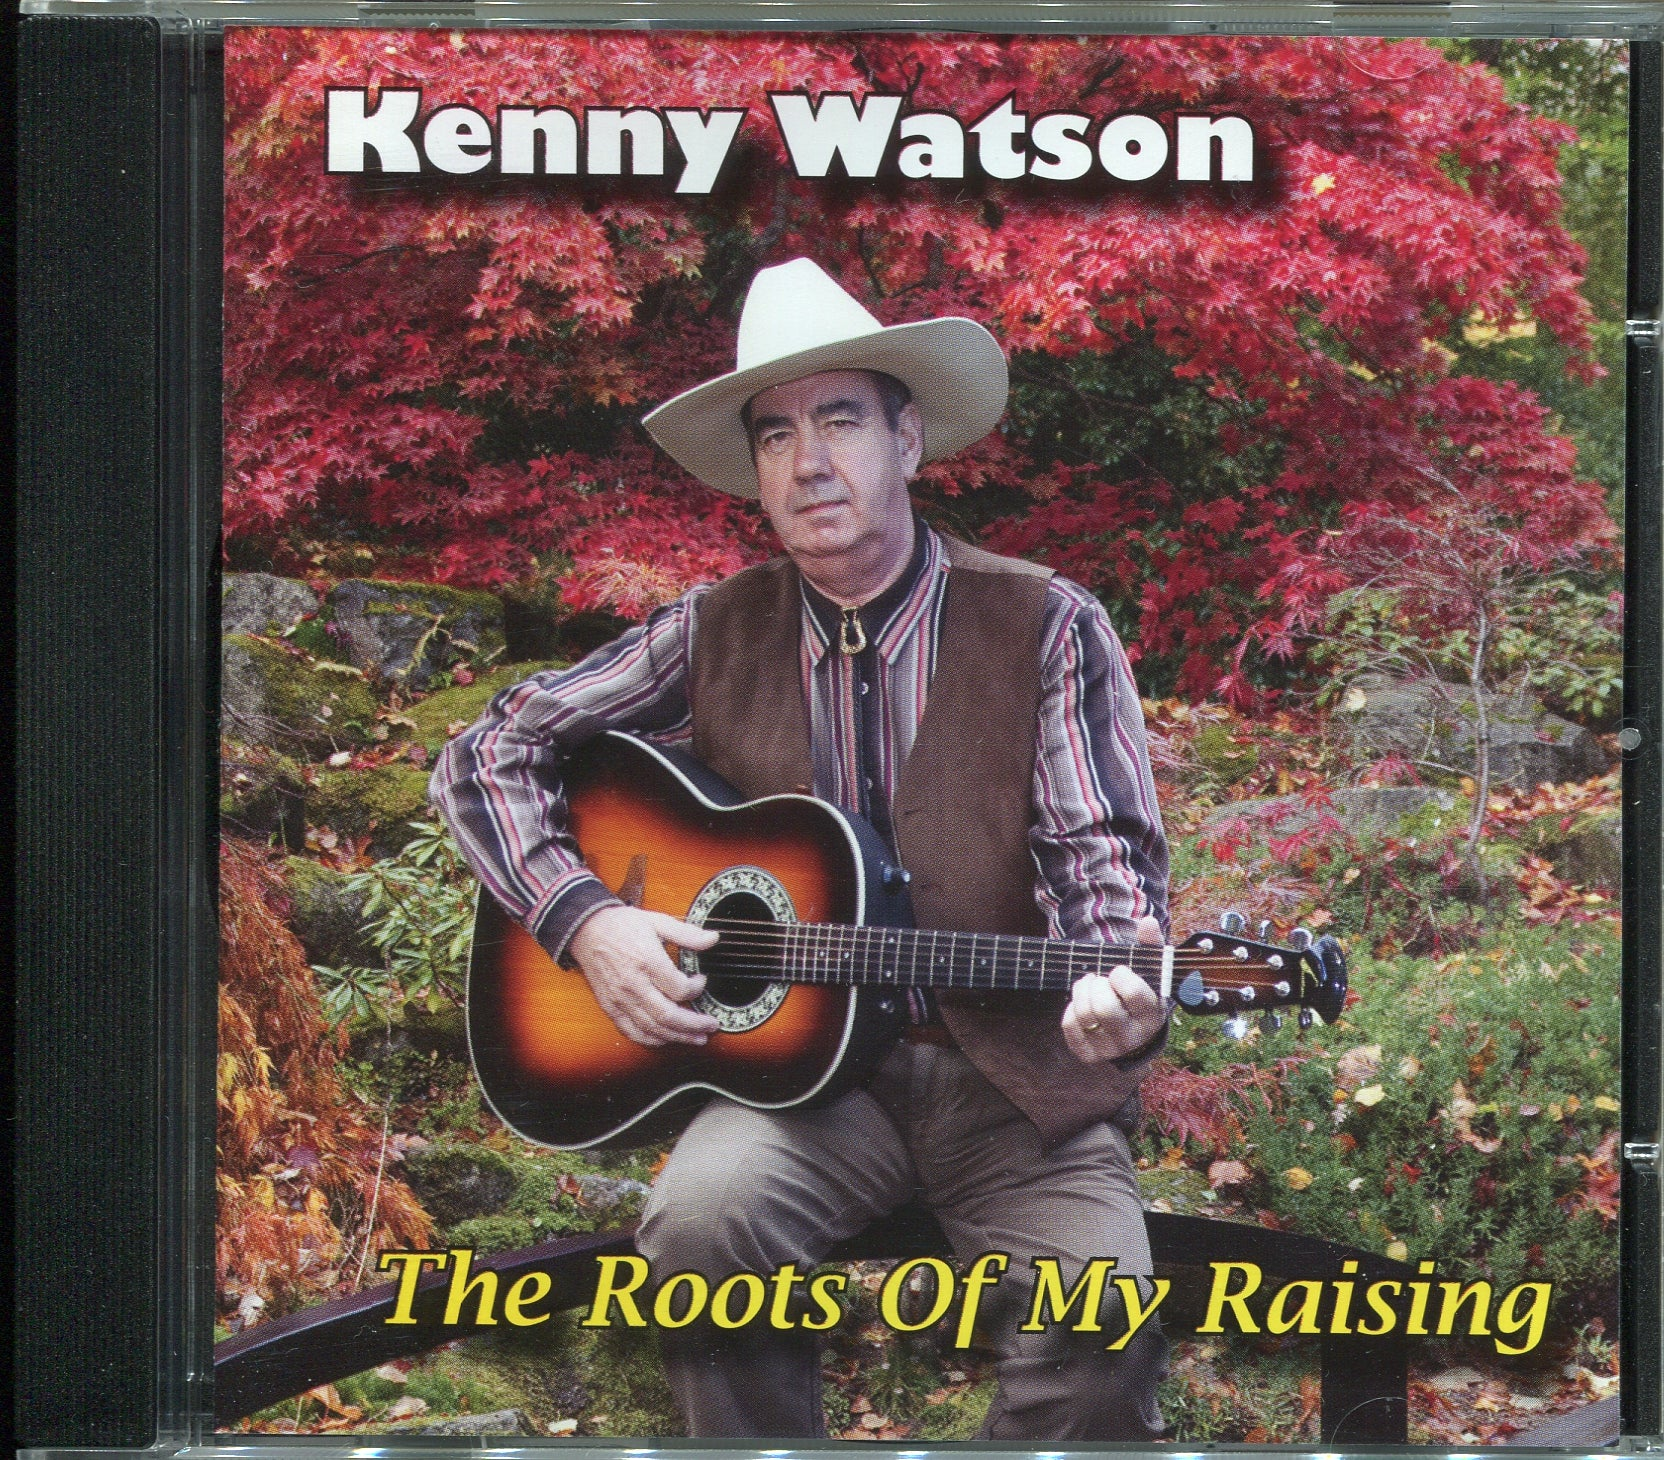 Kenny Watson - The Roots Of My Raising